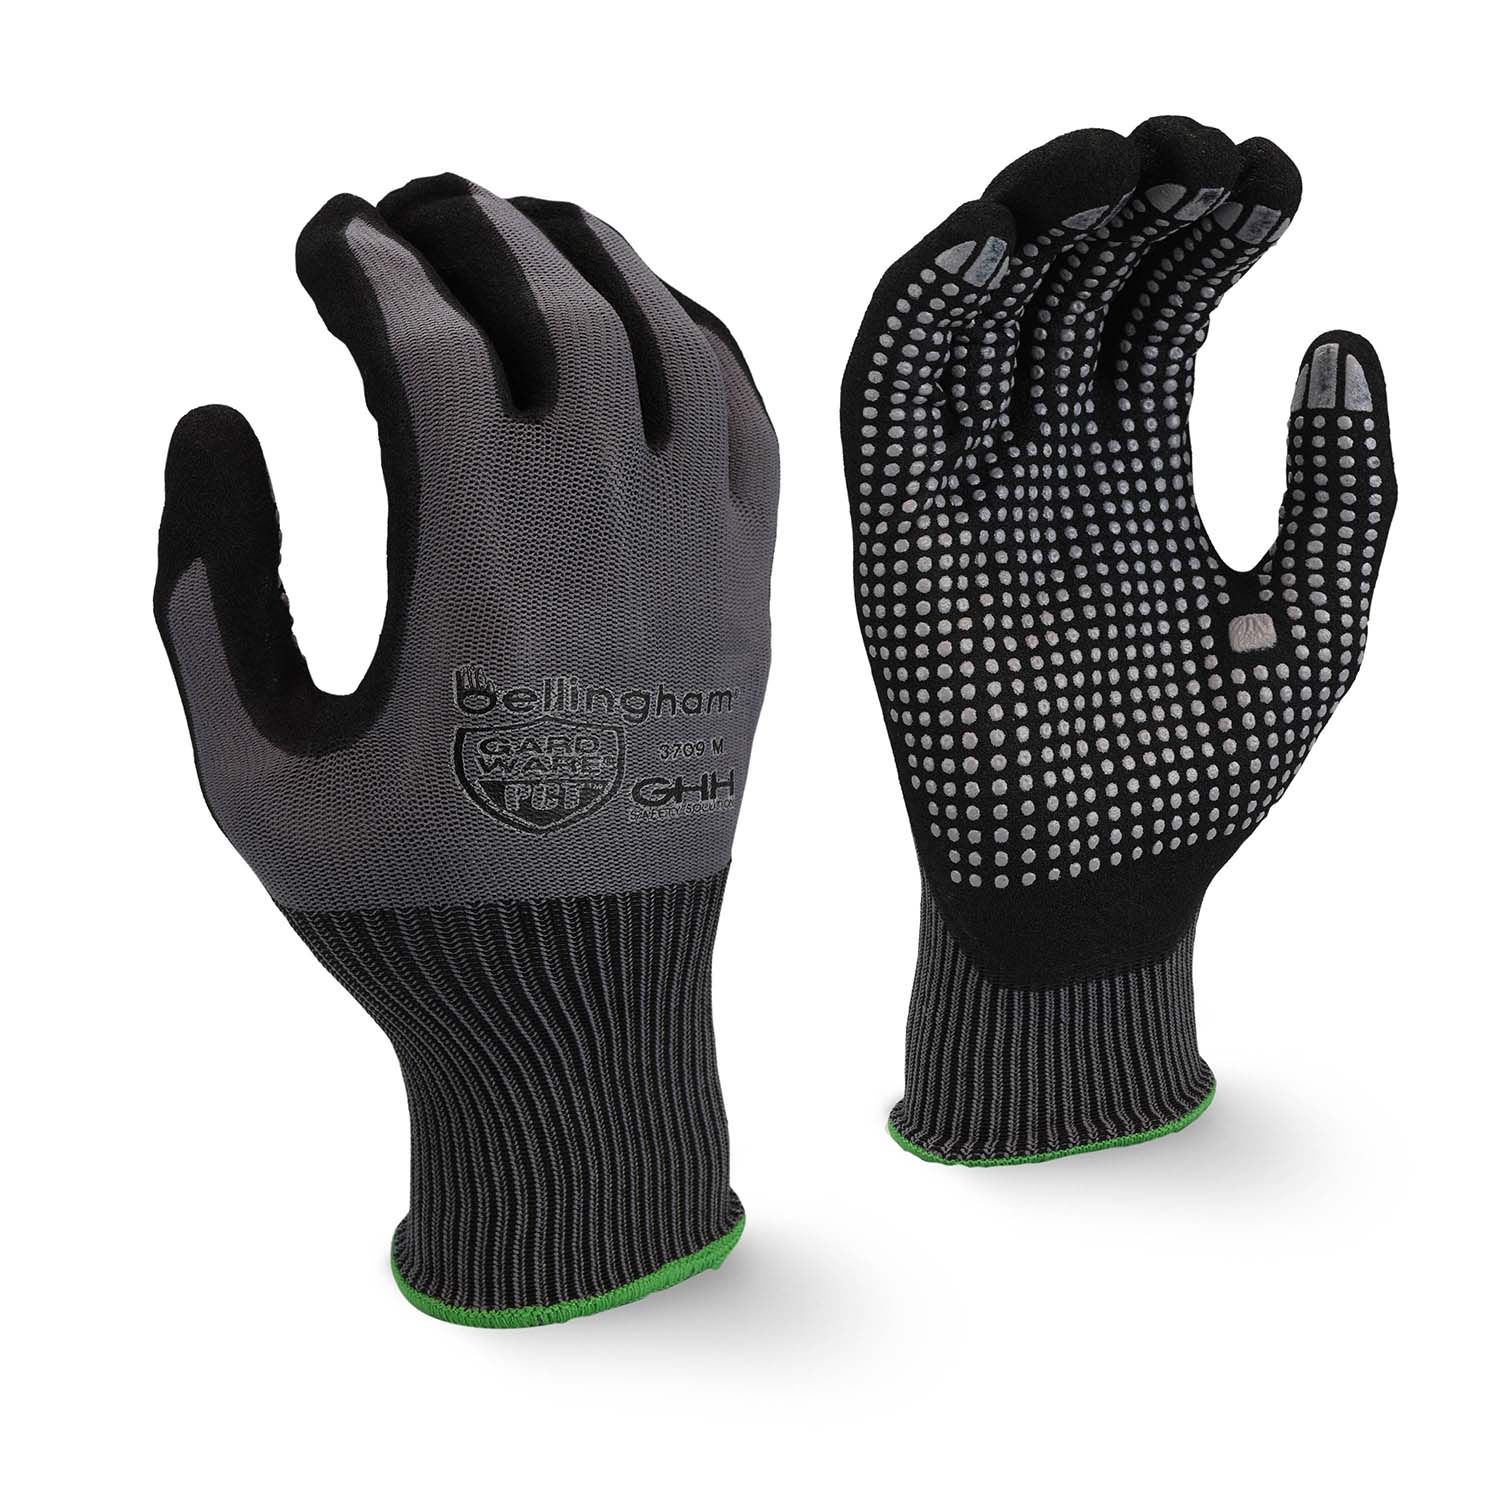 Bellingham Glove 3709 Oil-proof Durability PCT™ Palm Plus Dots Glove